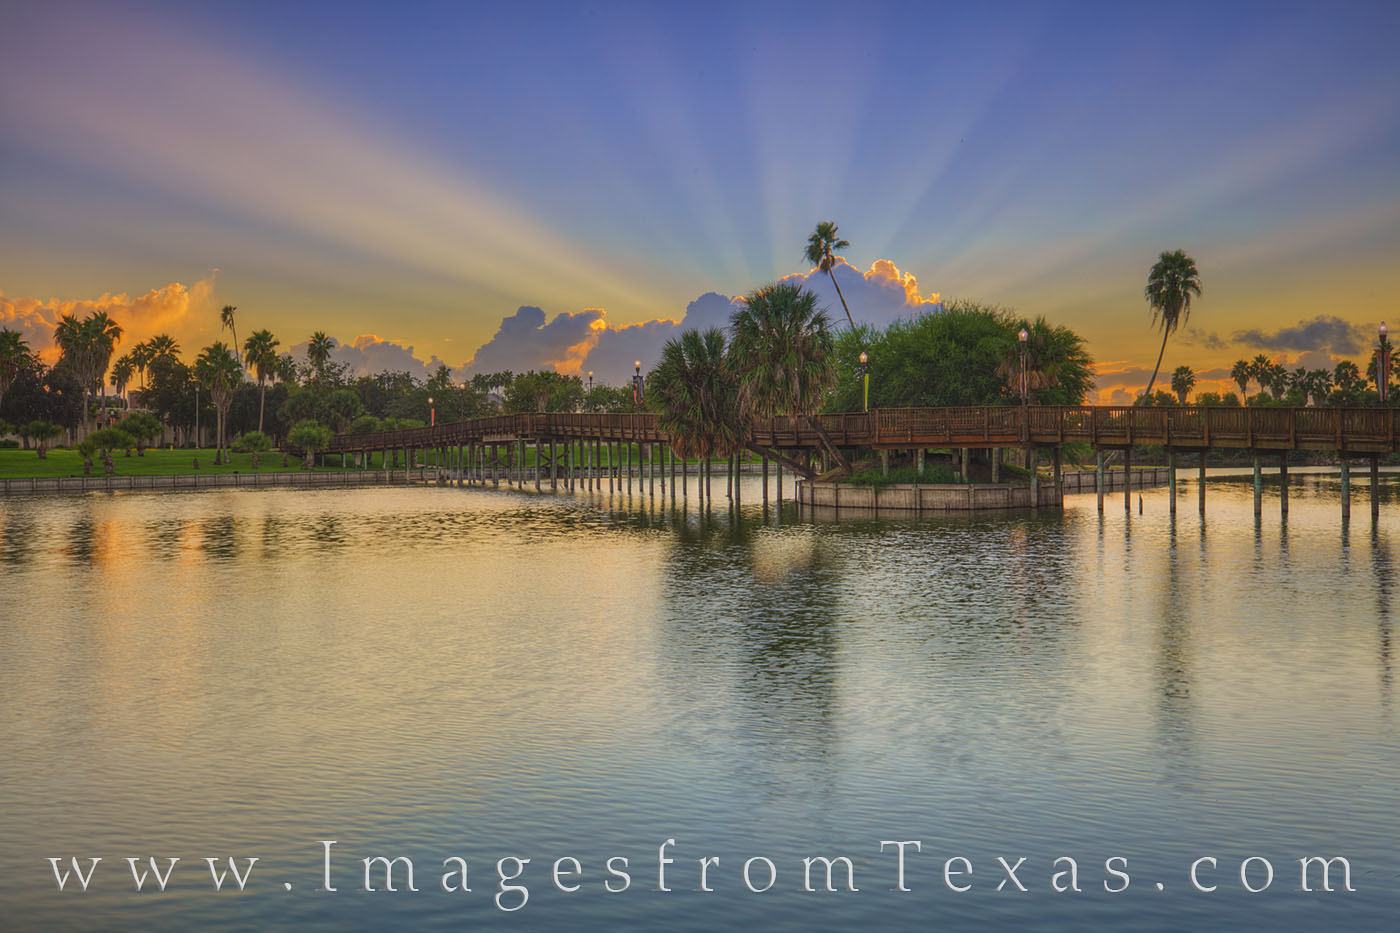 resaca, brownsville, texas southmost college, water, sunrise, bridge, palm trees, texas coast, border town, border, waterway, photo